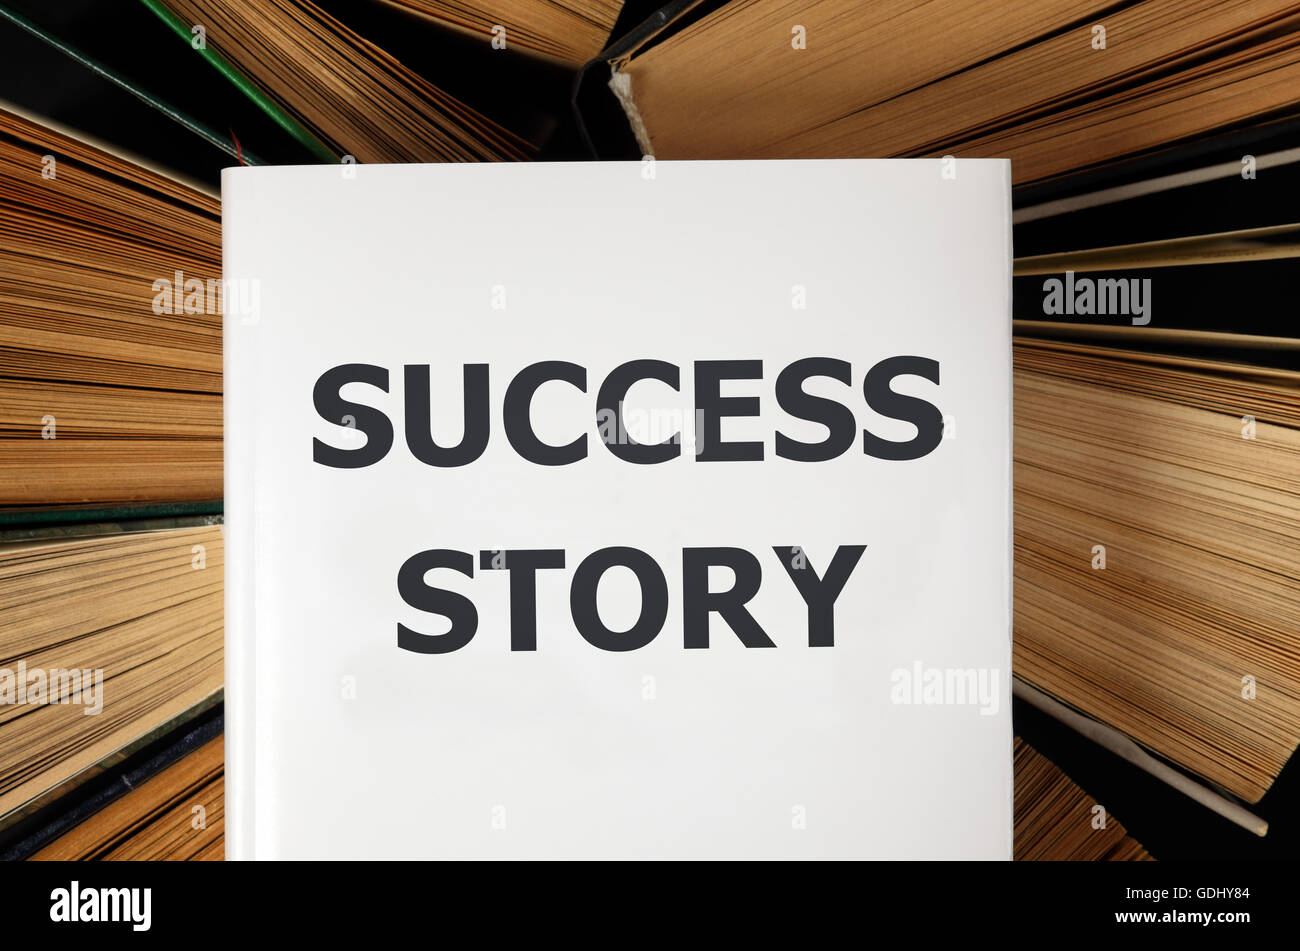 Top view of Success Story book  with old hardback books background - Stock Image